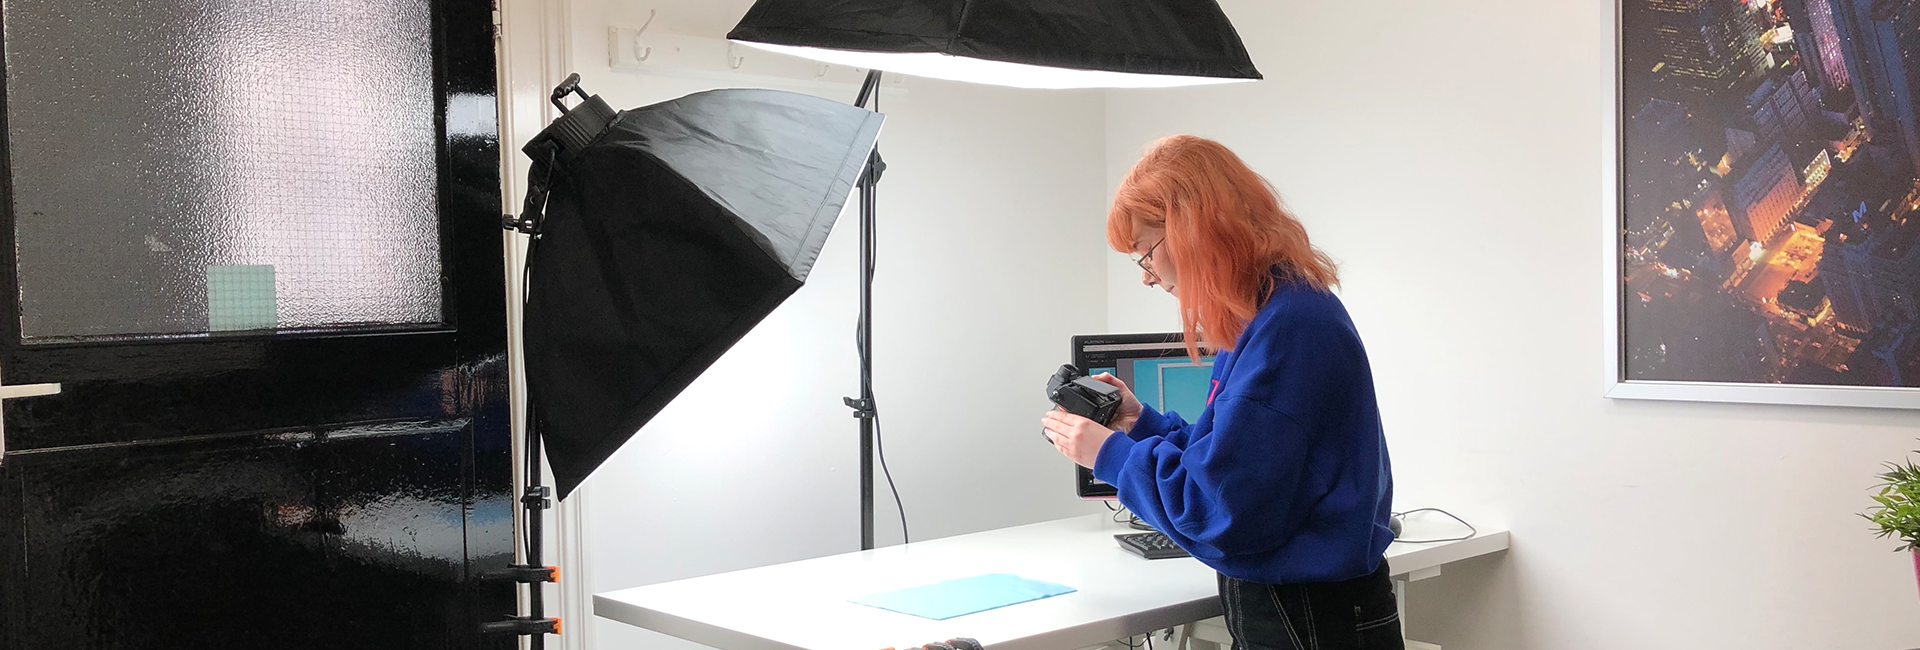 Digital Storm enjoys hosting Grace for some photography work experience